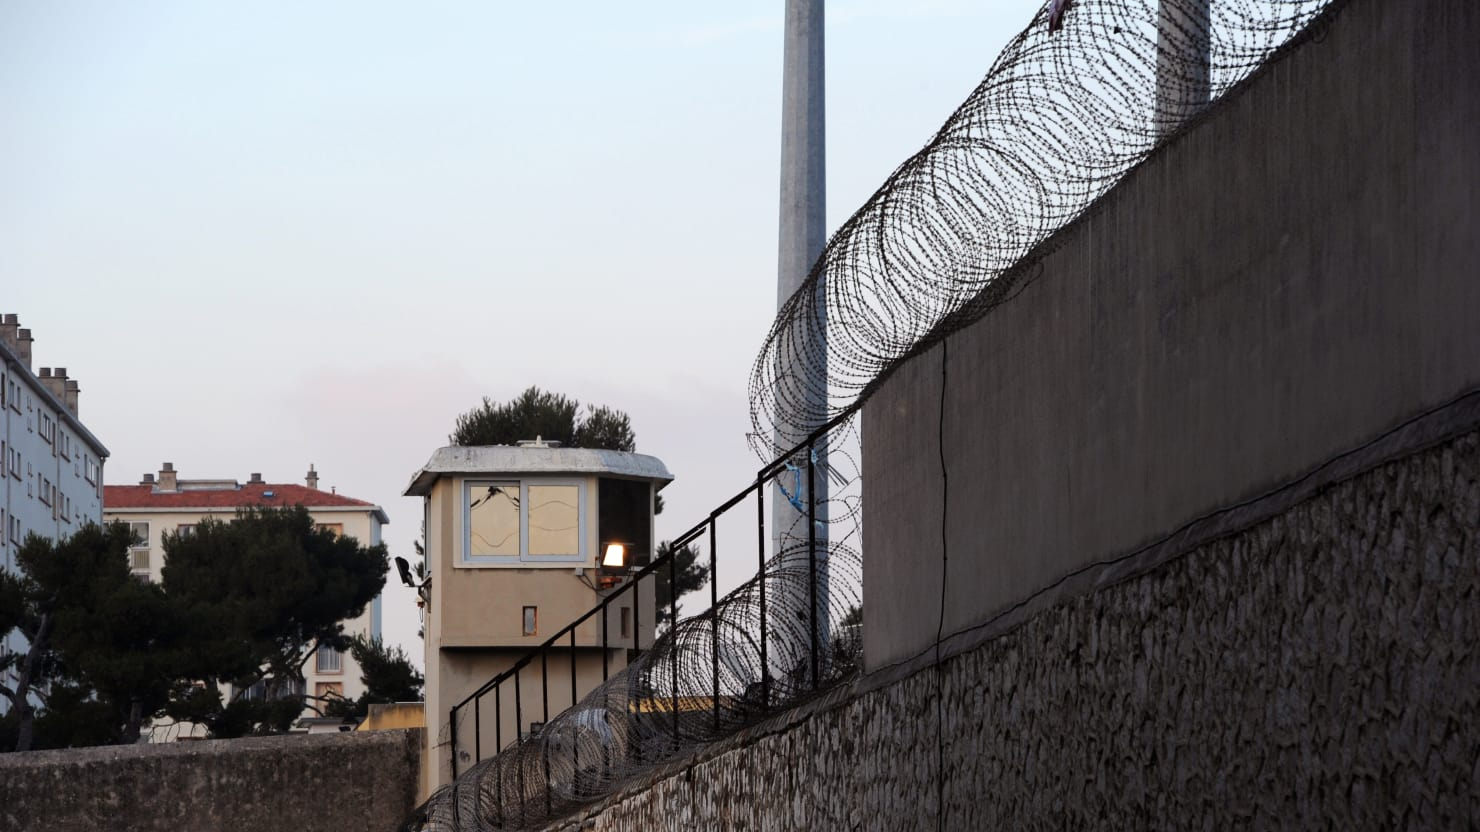 The Terrorist Threat in France: A Look at Prison Radicalization